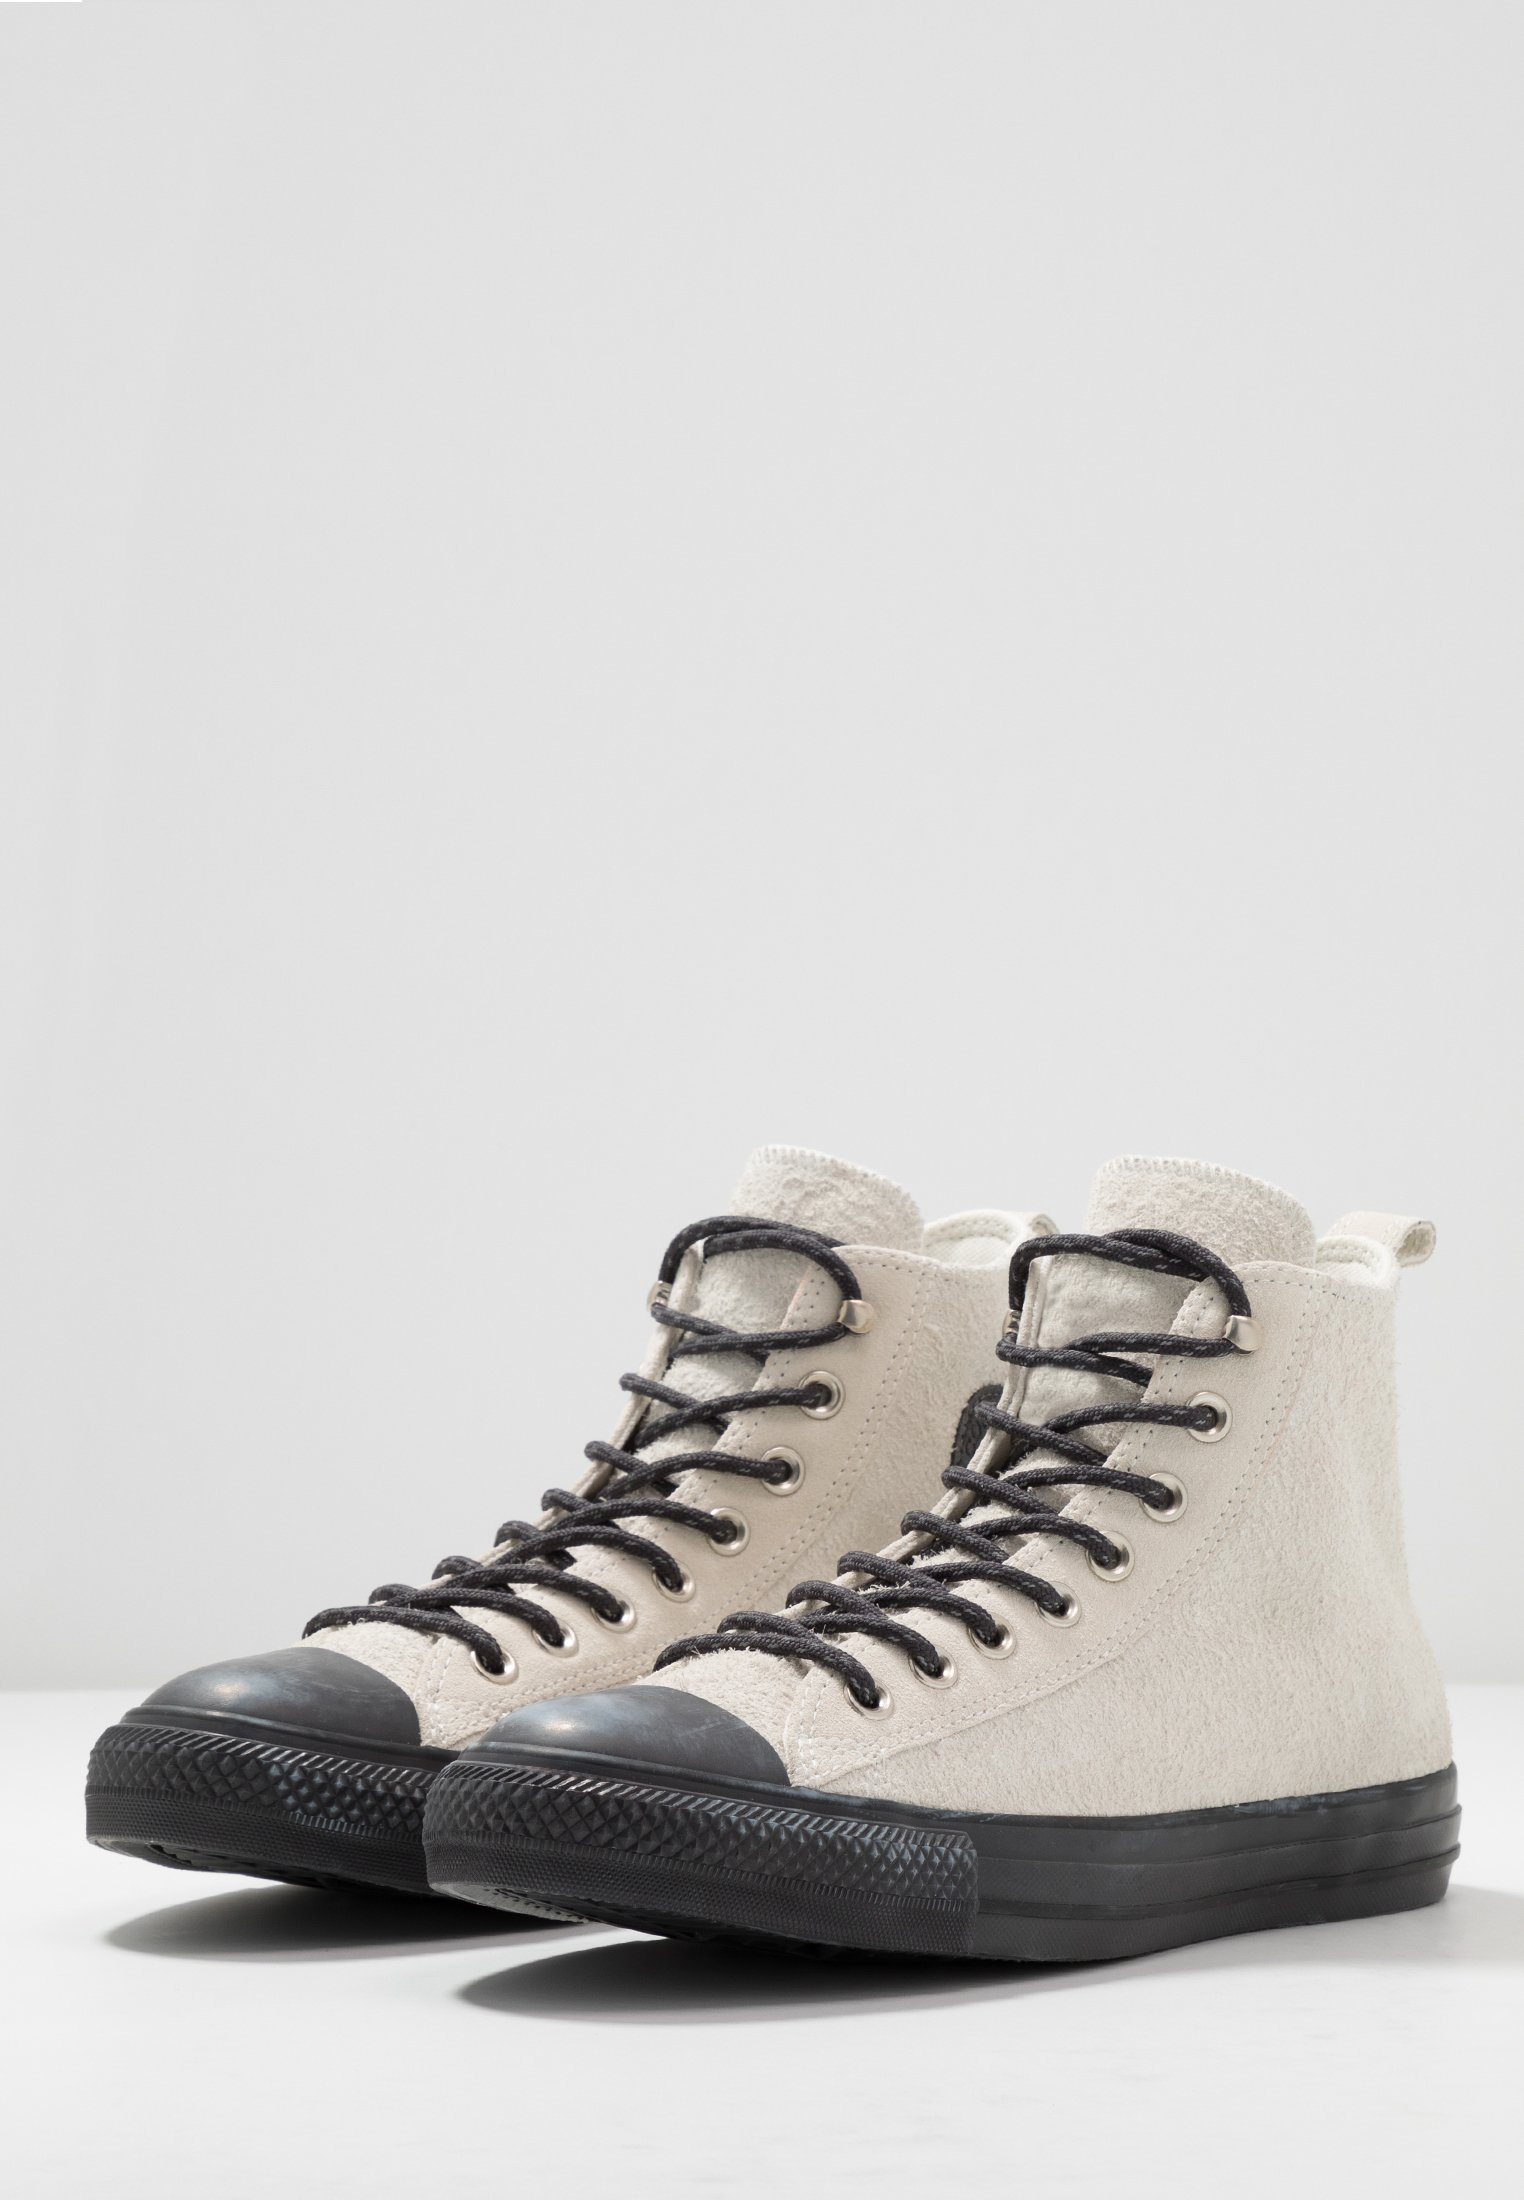 Taylor StarSneakers punch Alte Vaporous All Grey Chuck Converse eEWIDHY92